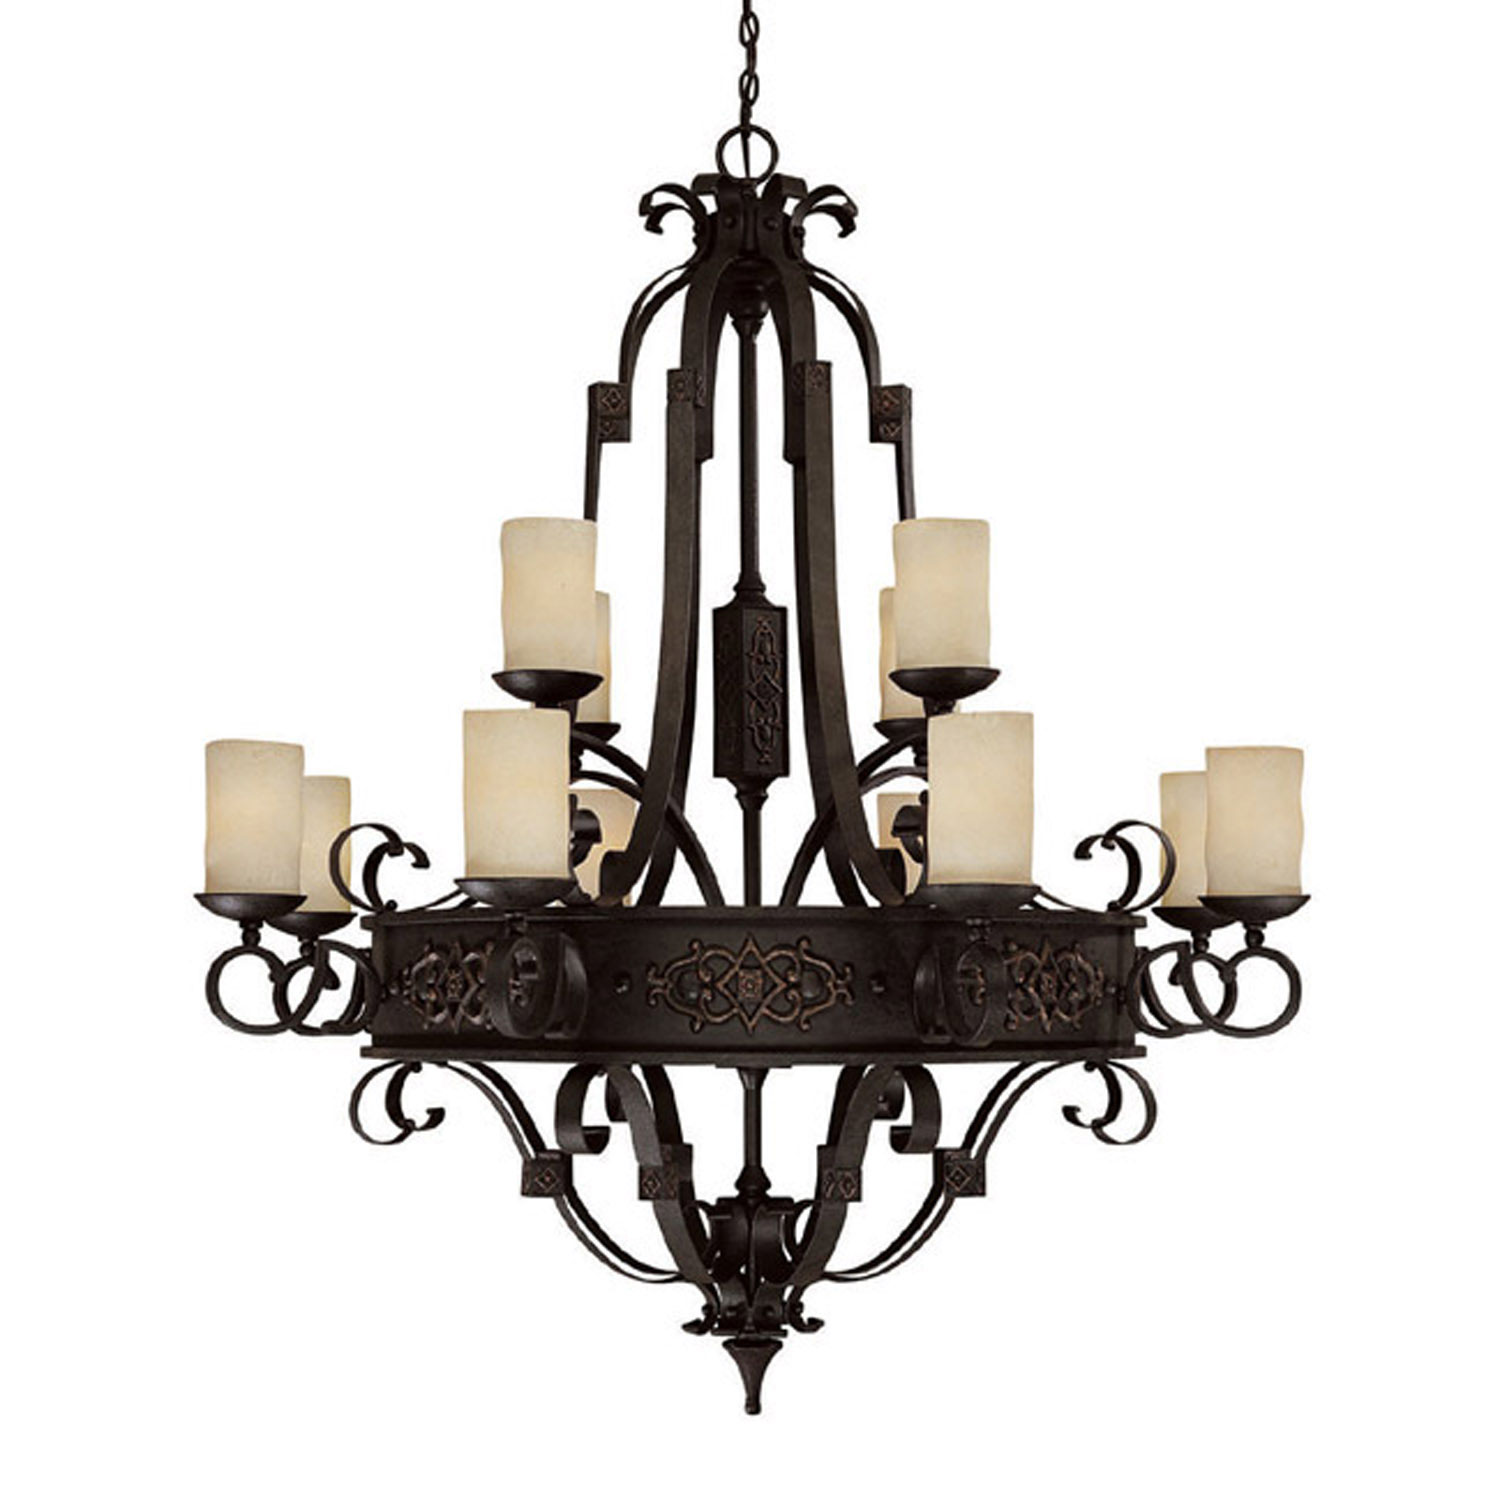 12 Light Chandelier from the River Crest collection by Capital Lighting 3602RI 125